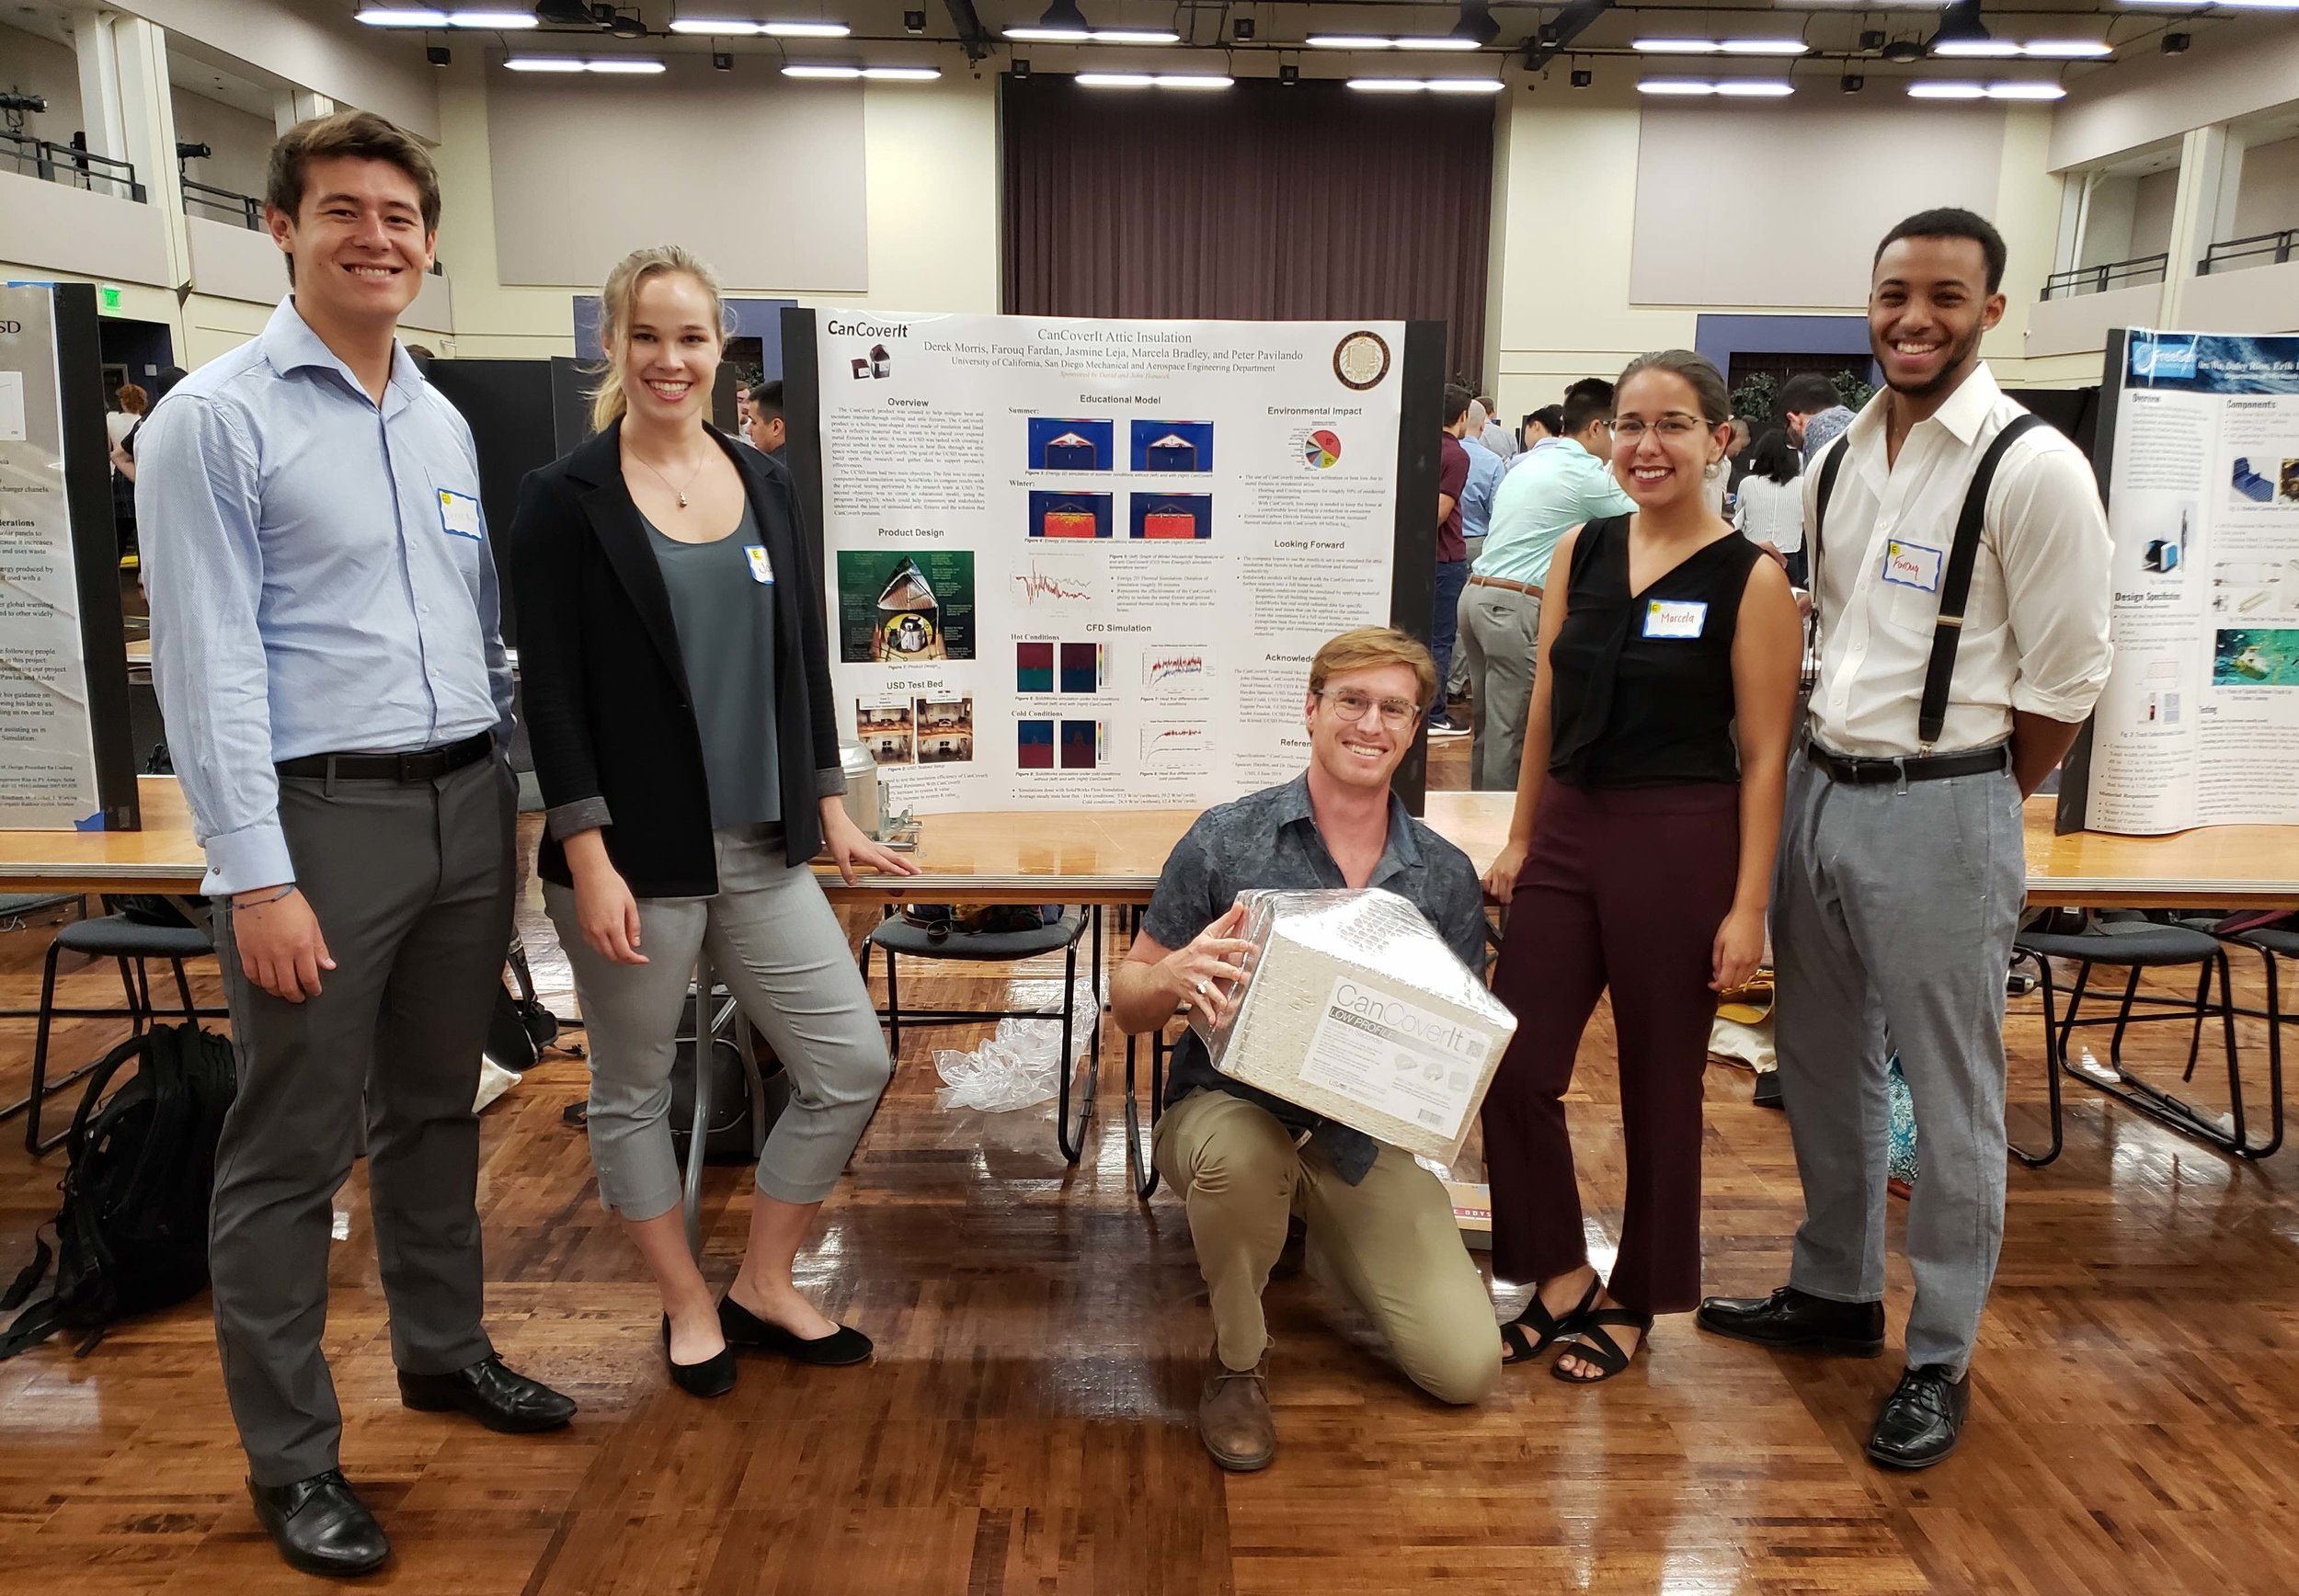 UCSD student team at final poster session